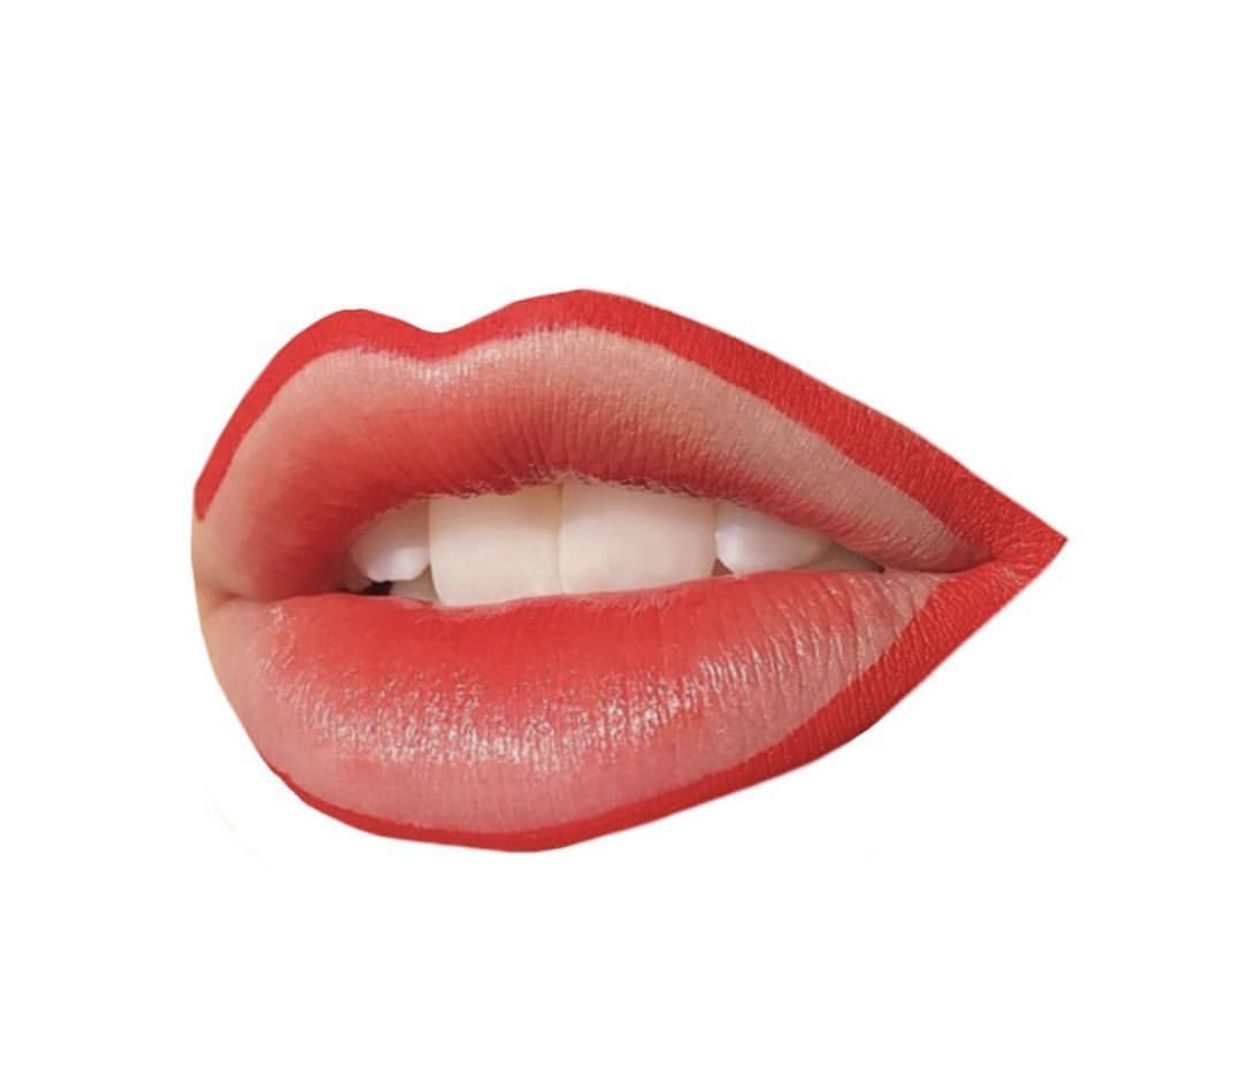 Red Lips Lipstick Polyvore Moodboard Filler Lipstick Art